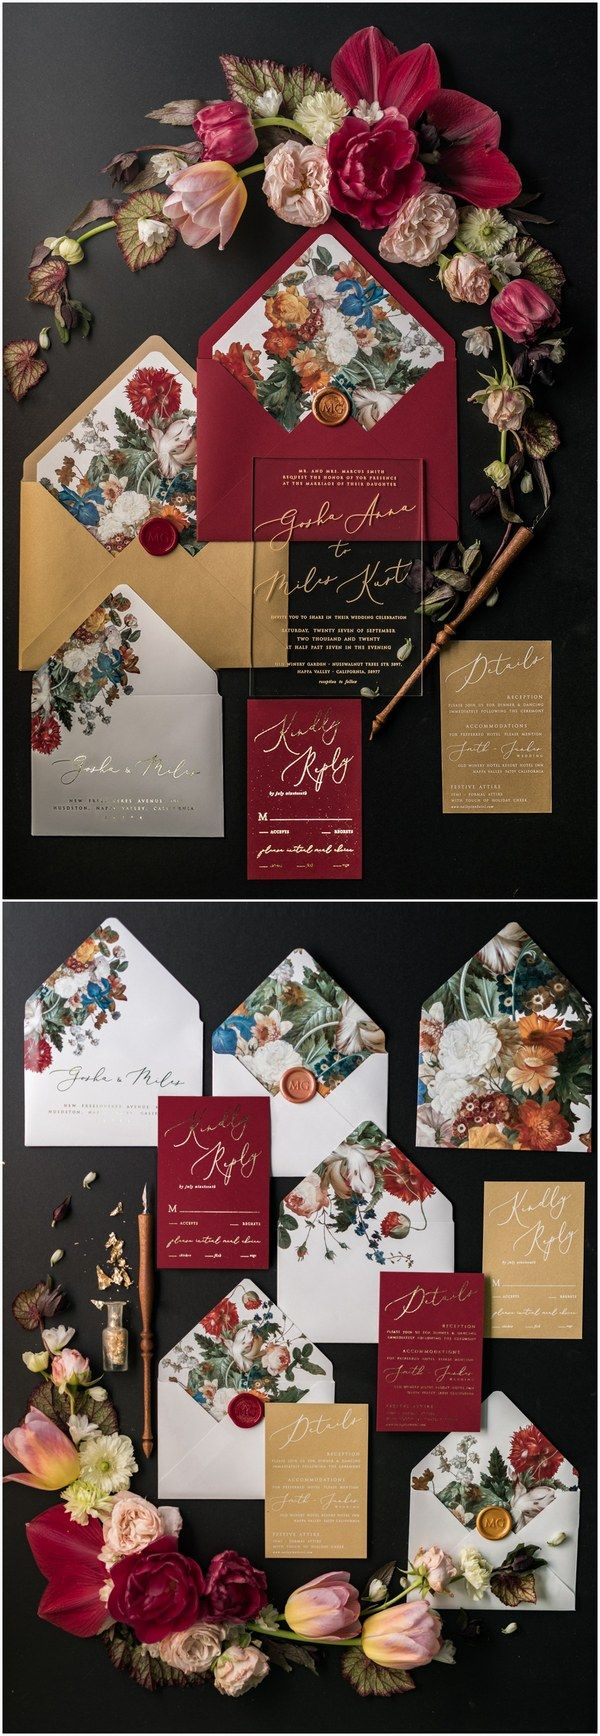 323 best invitations images on Pinterest | Wedding stationery, Card ...